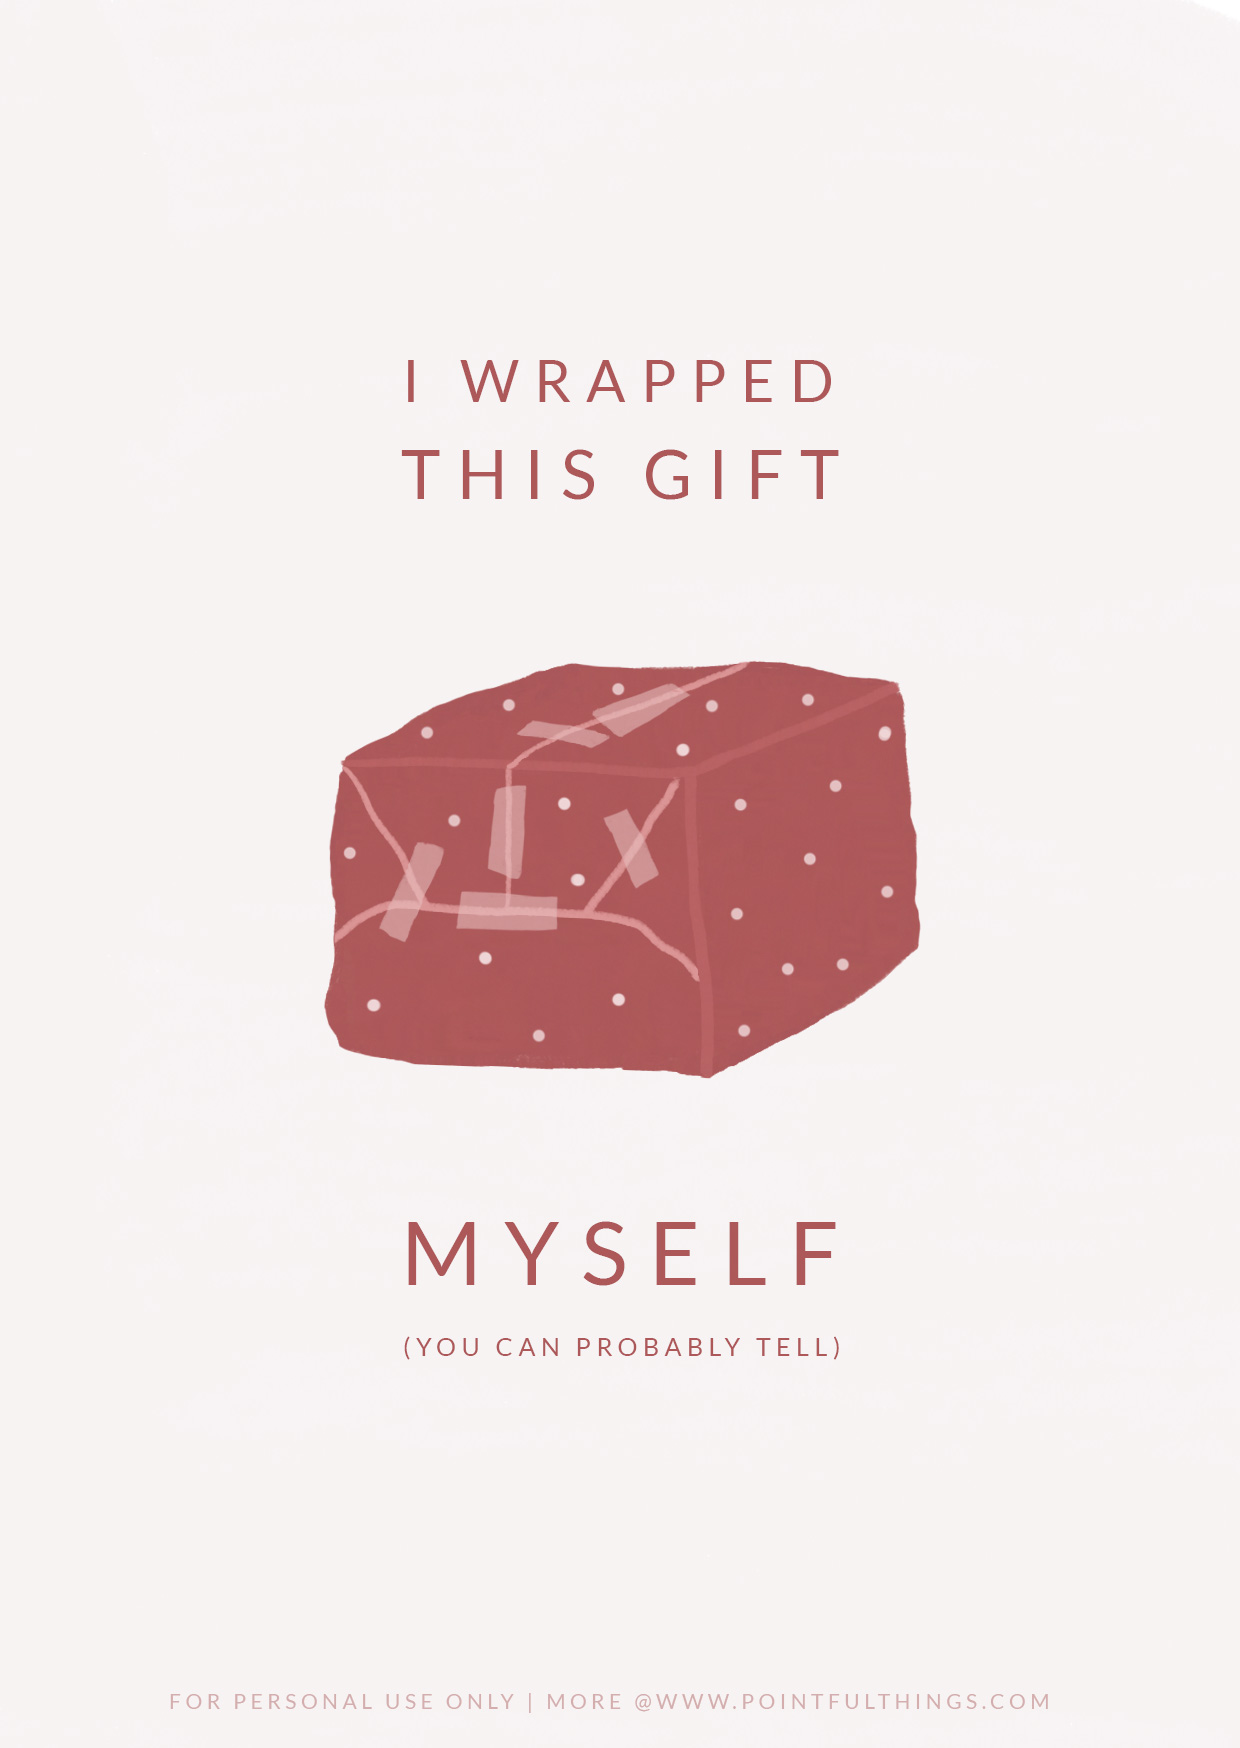 Card - I wrapped this gift myself